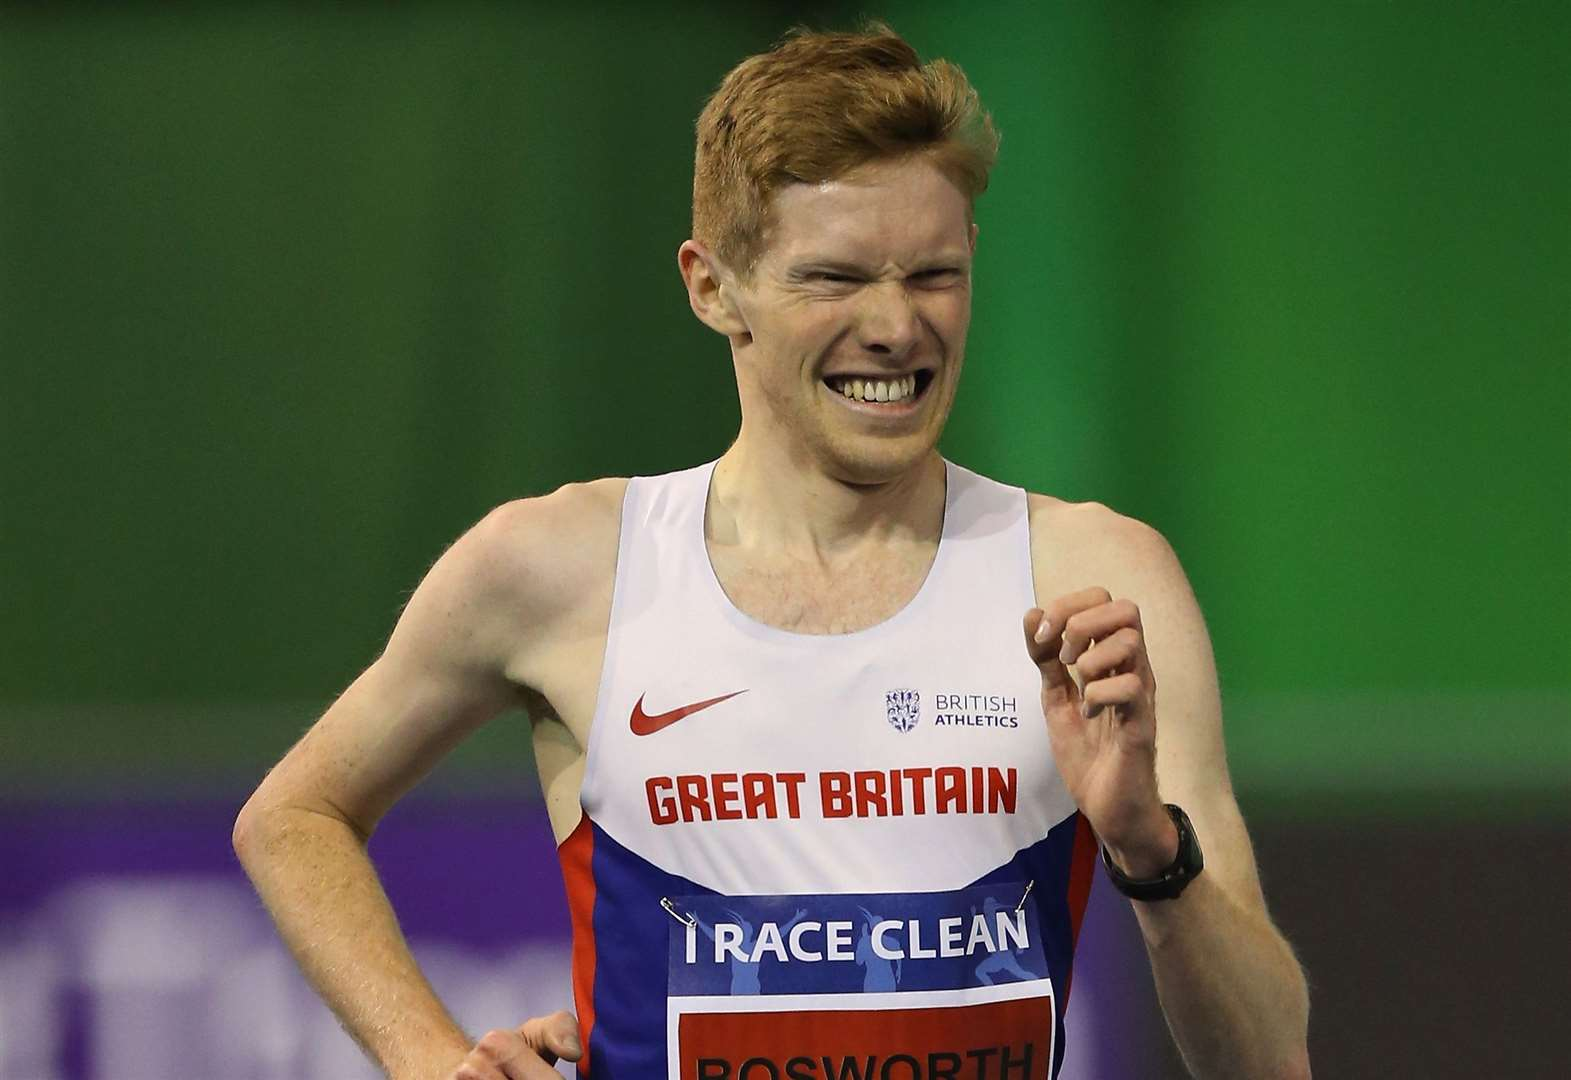 Tom Bosworth claims Olympic Games spot